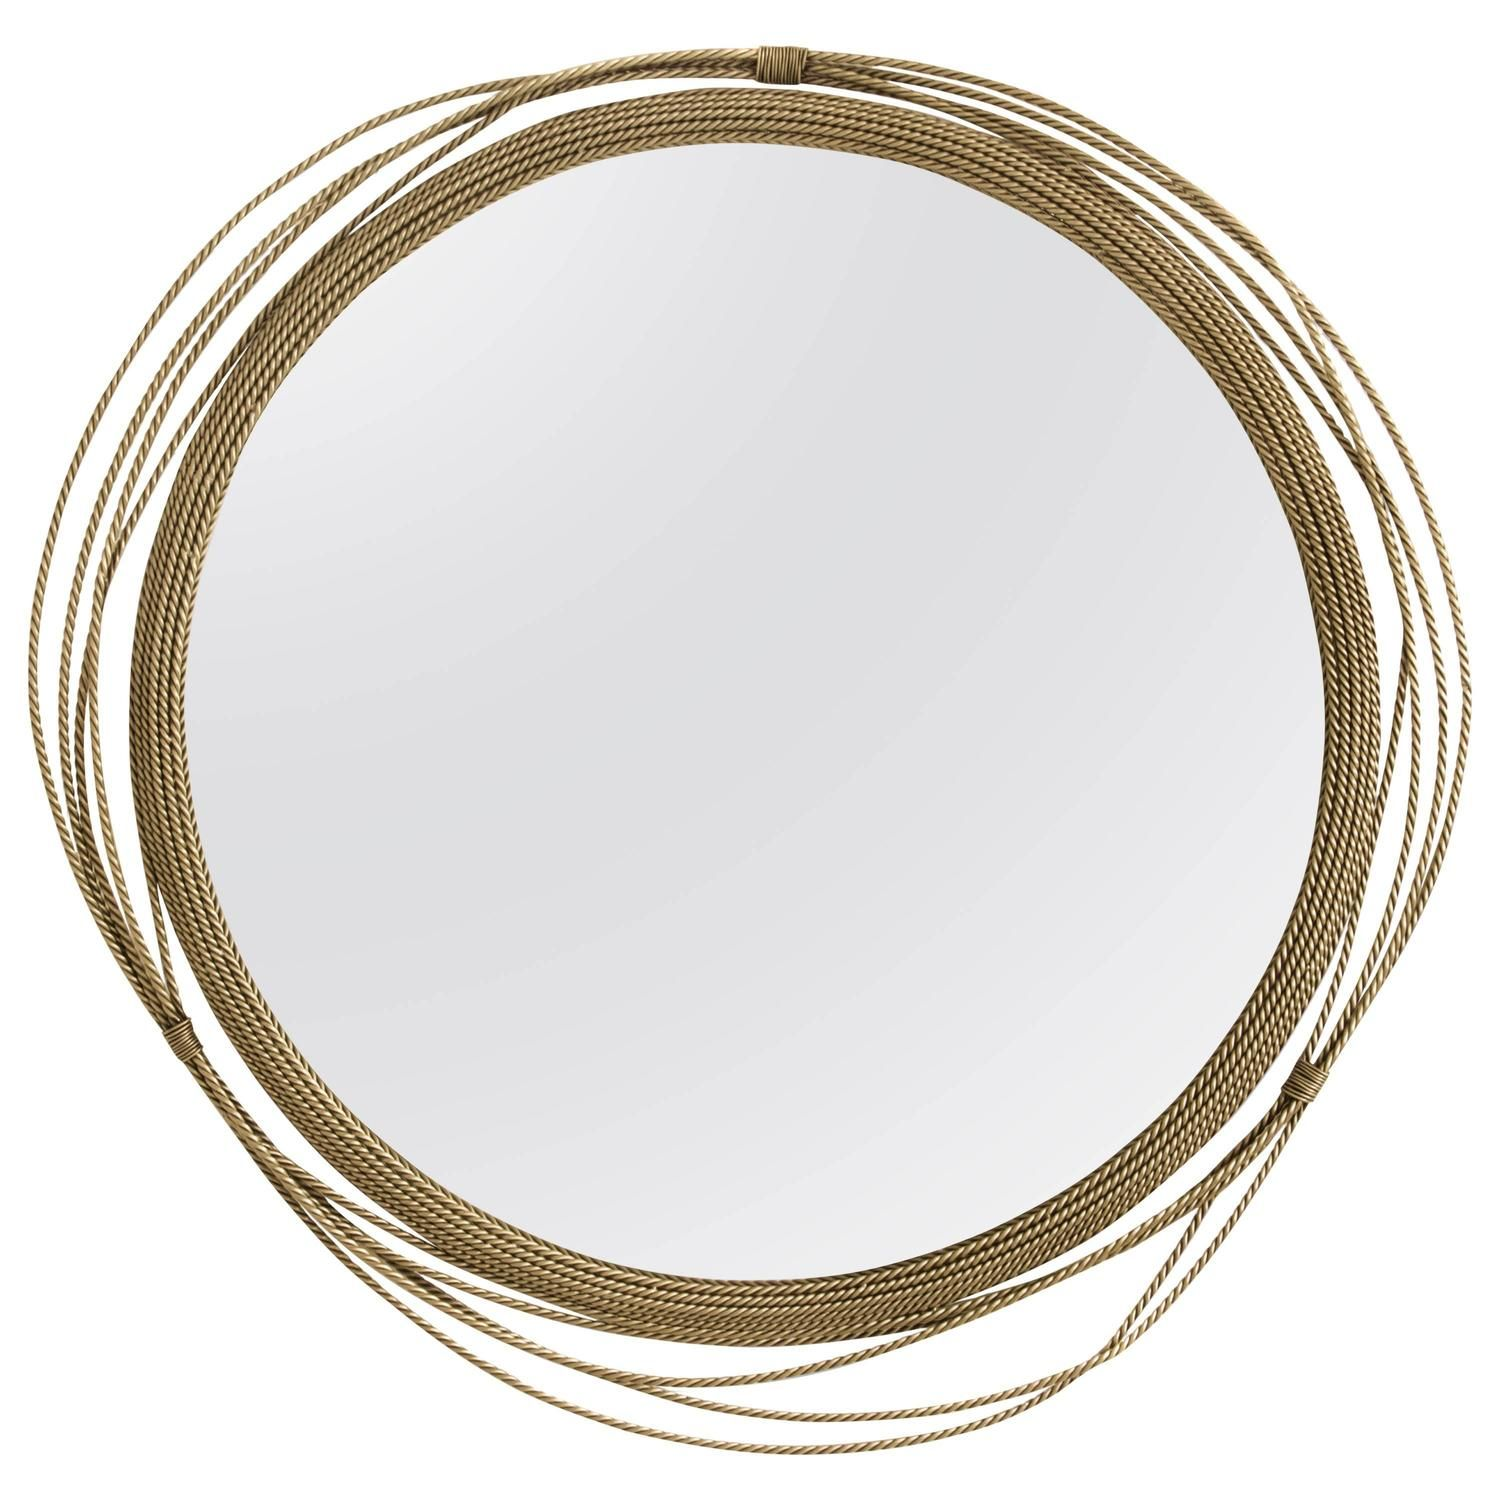 Top 25 Luxury Mirrors That Will Enhance Your Home_16 luxury mirrors Top 20 Luxury Mirrors That Will Enhance Your Home Top 25 Luxury Mirrors That Will Enhance Your Home 16